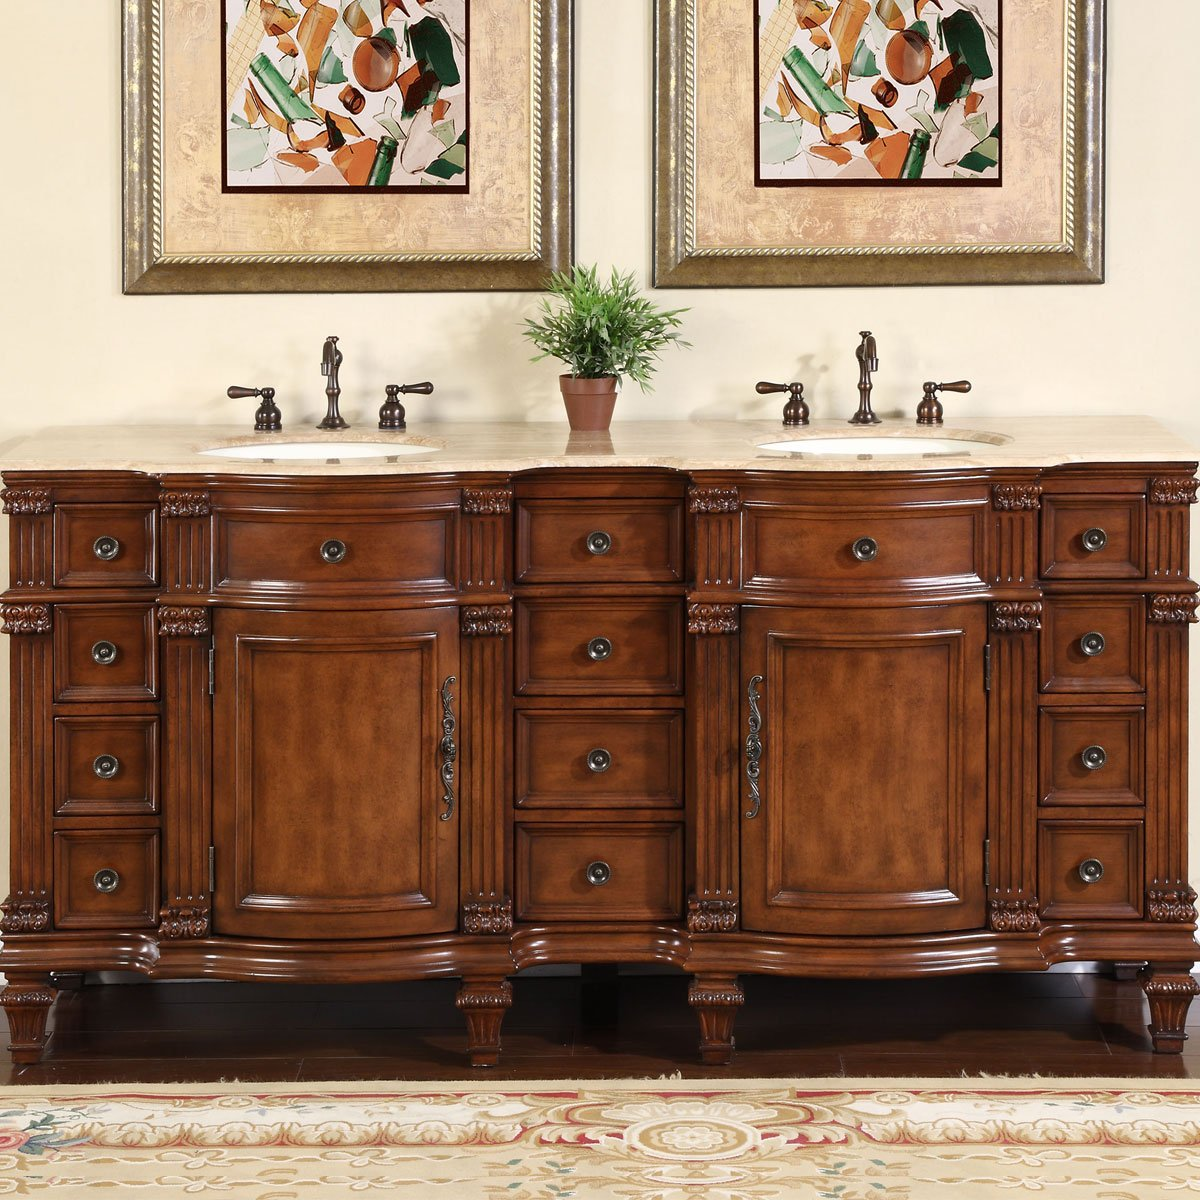 amazoncom silkroad exclusive travertine stone top double sink bathroom vanity with furniture bath cabinet 72 inch home kitchen - Double Sink Bathroom Vanities